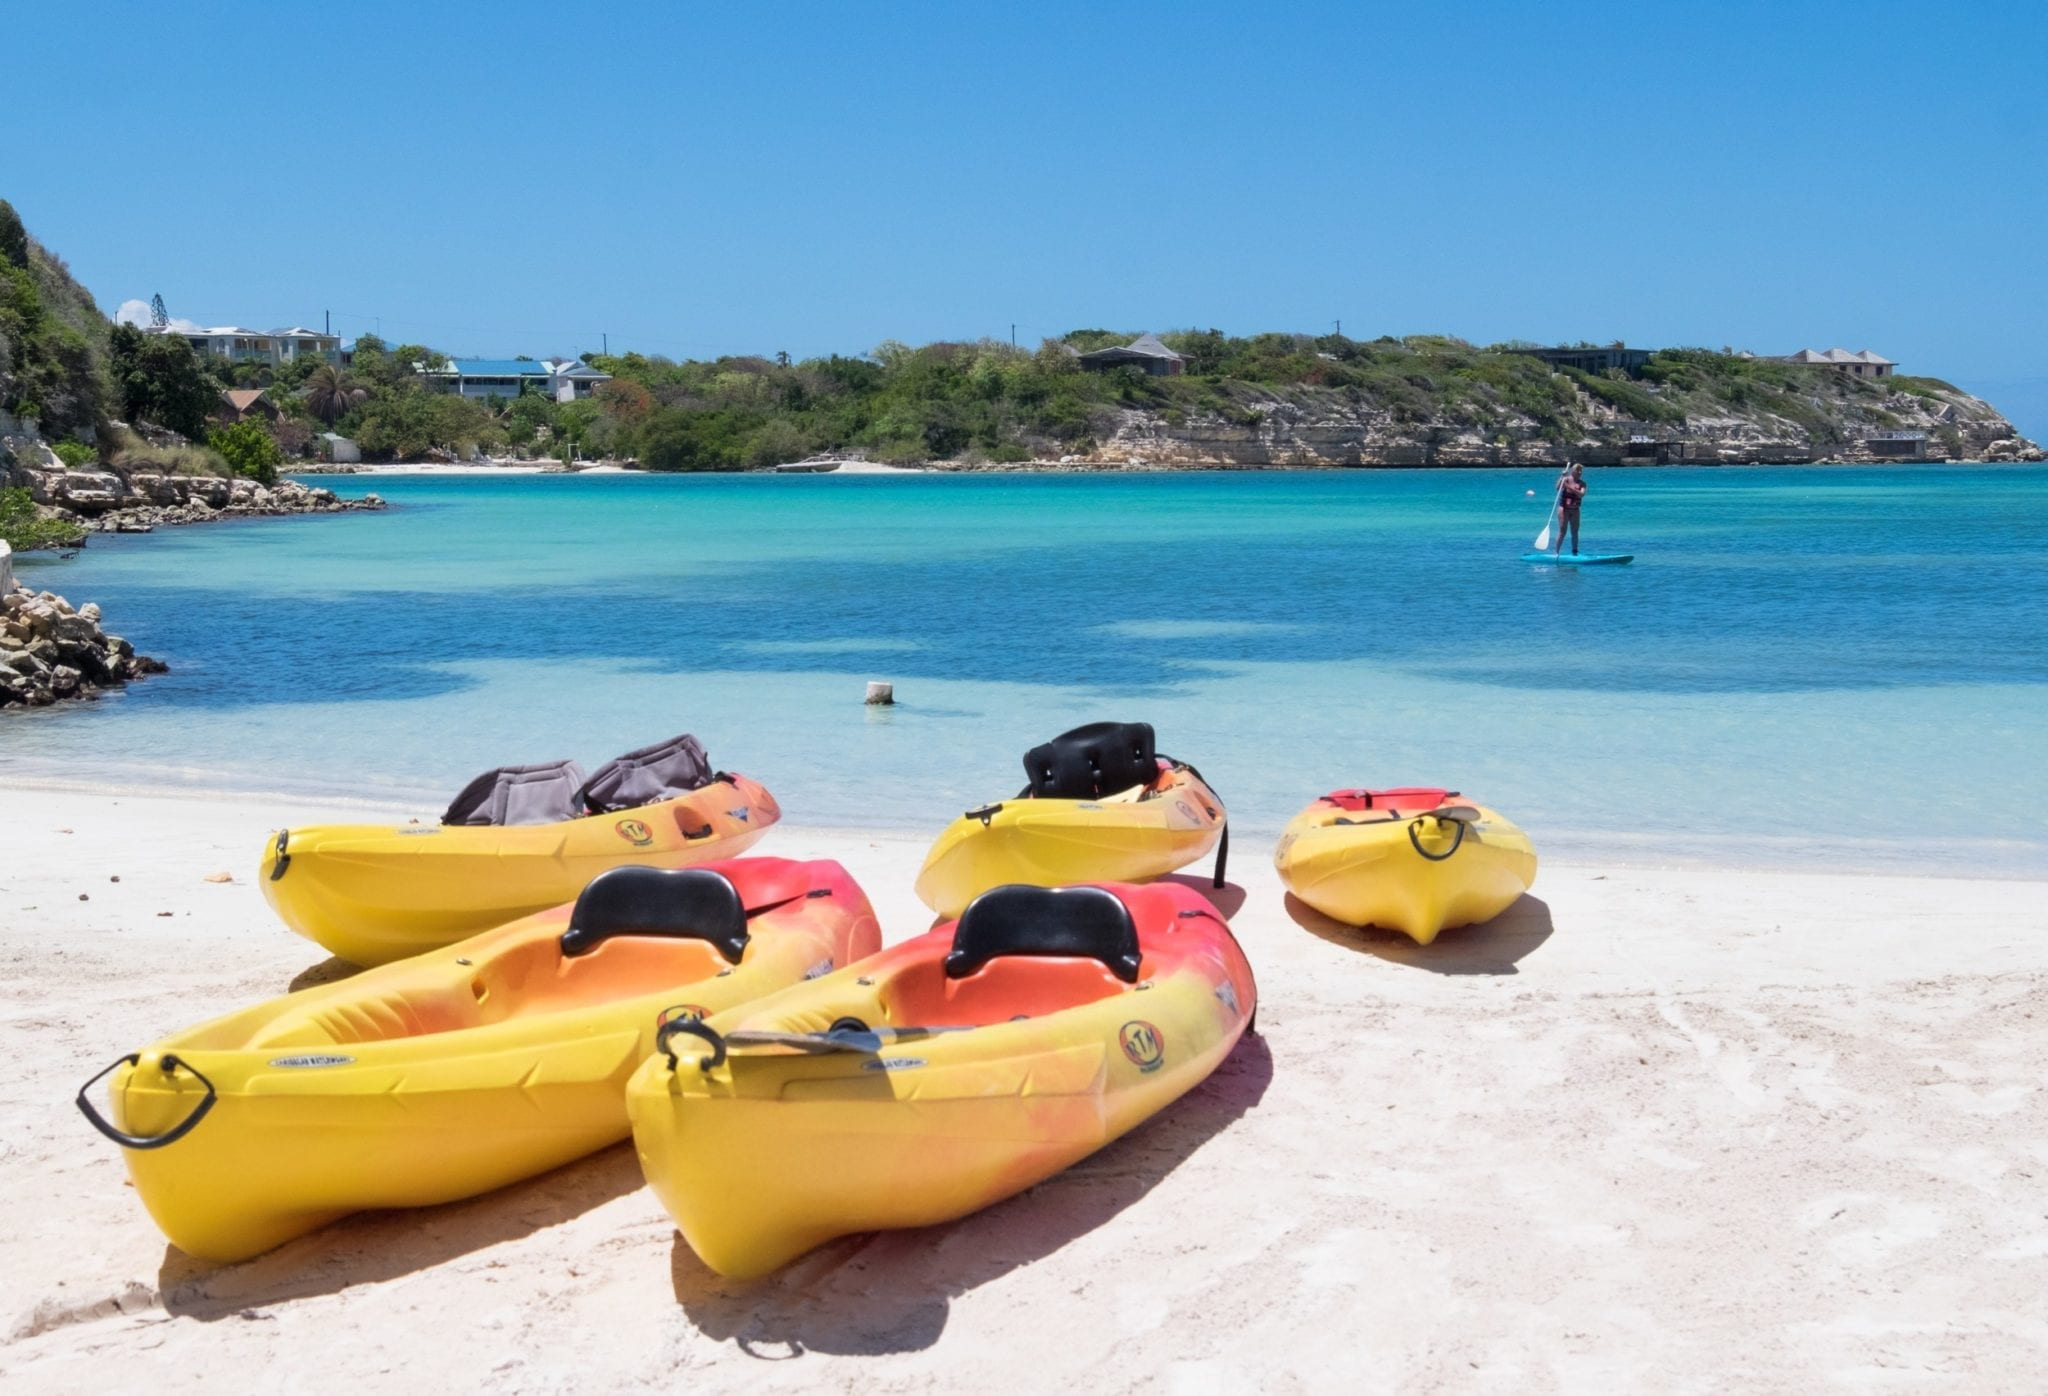 Several yellow and red kayaks resting on a white sand beach in front of a turquoise ocean.